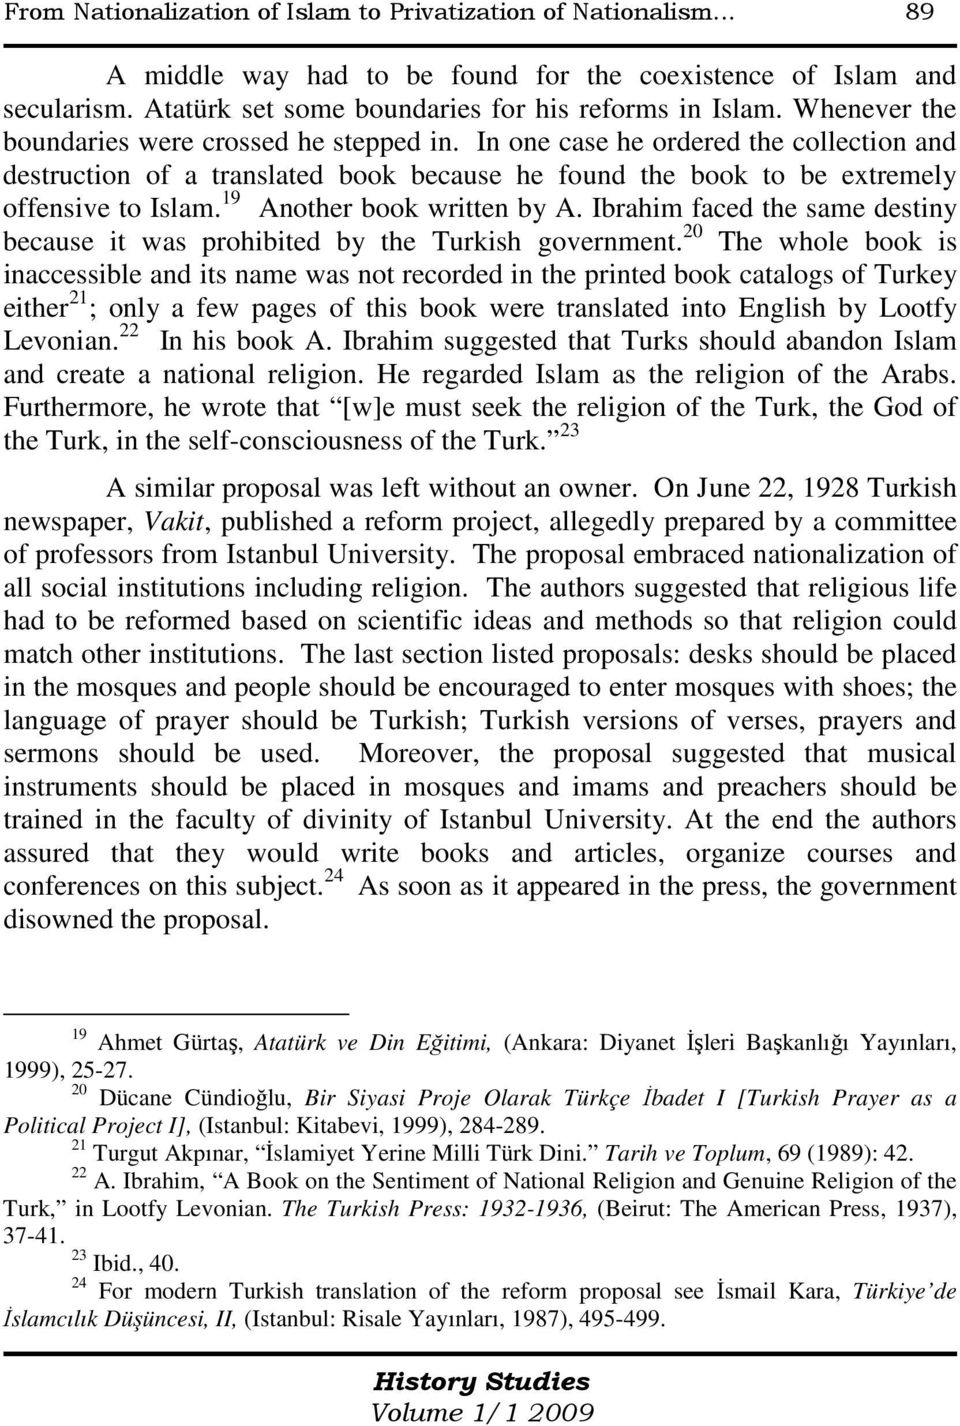 19 Another book written by A. Ibrahim faced the same destiny because it was prohibited by the Turkish government.